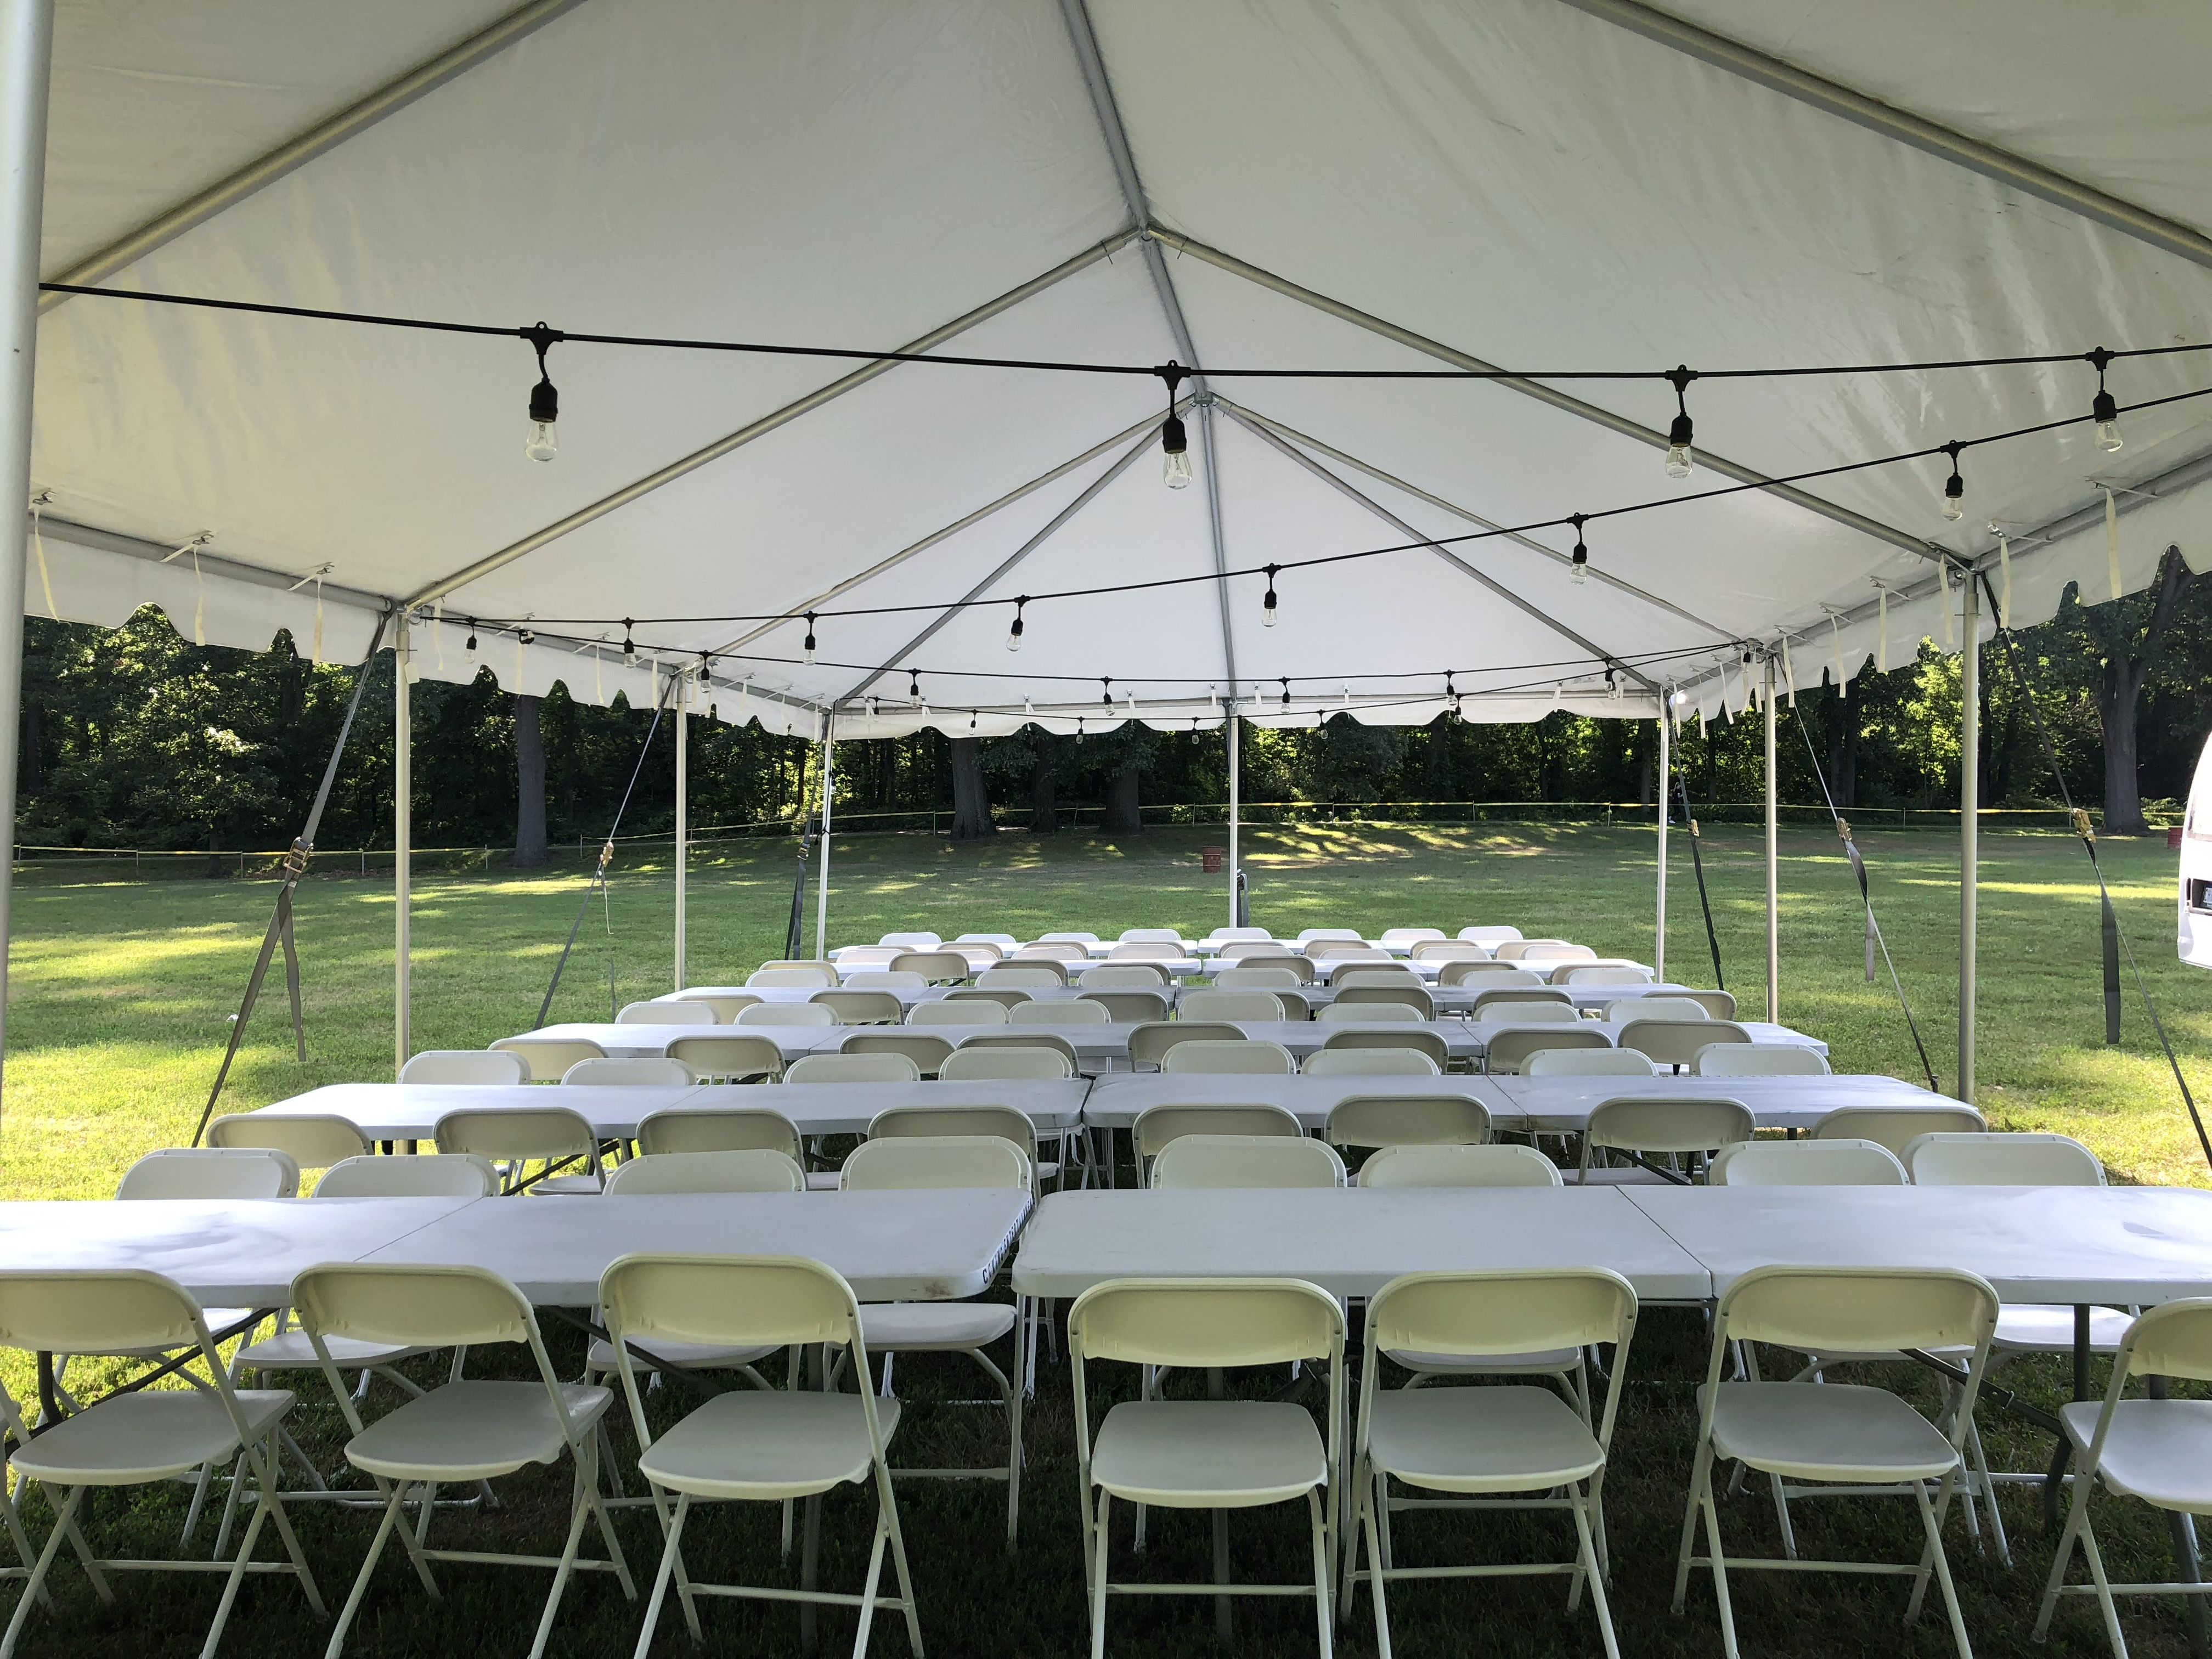 Outdoor wedding rentals. Tents, tables and chairs.